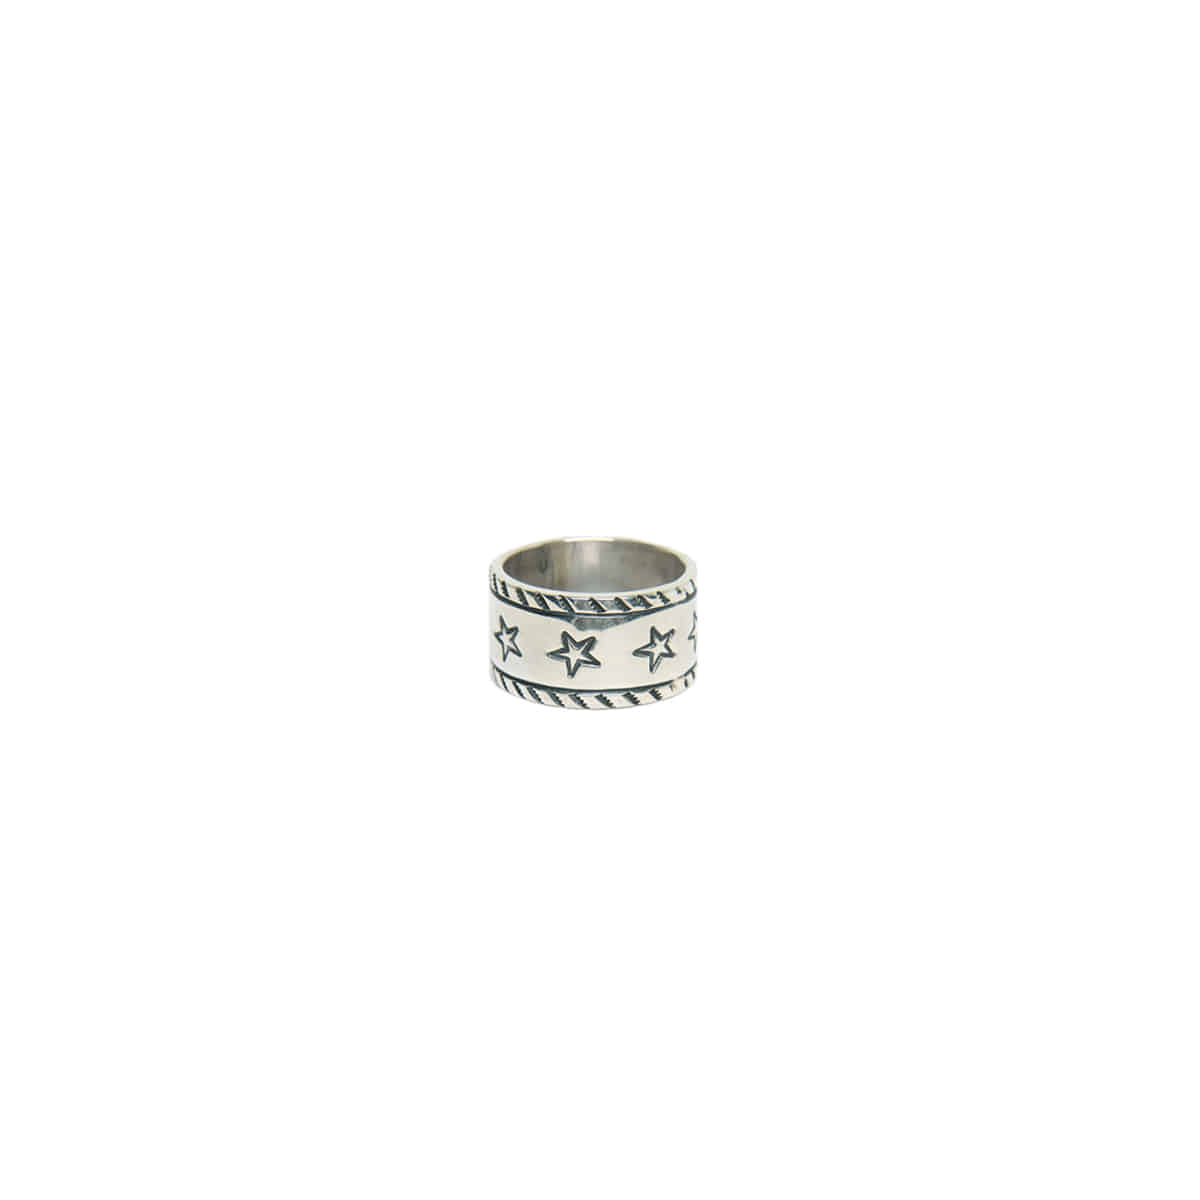 [NORTH WORKS] 900 SILVER STAMP RING 'W-053'